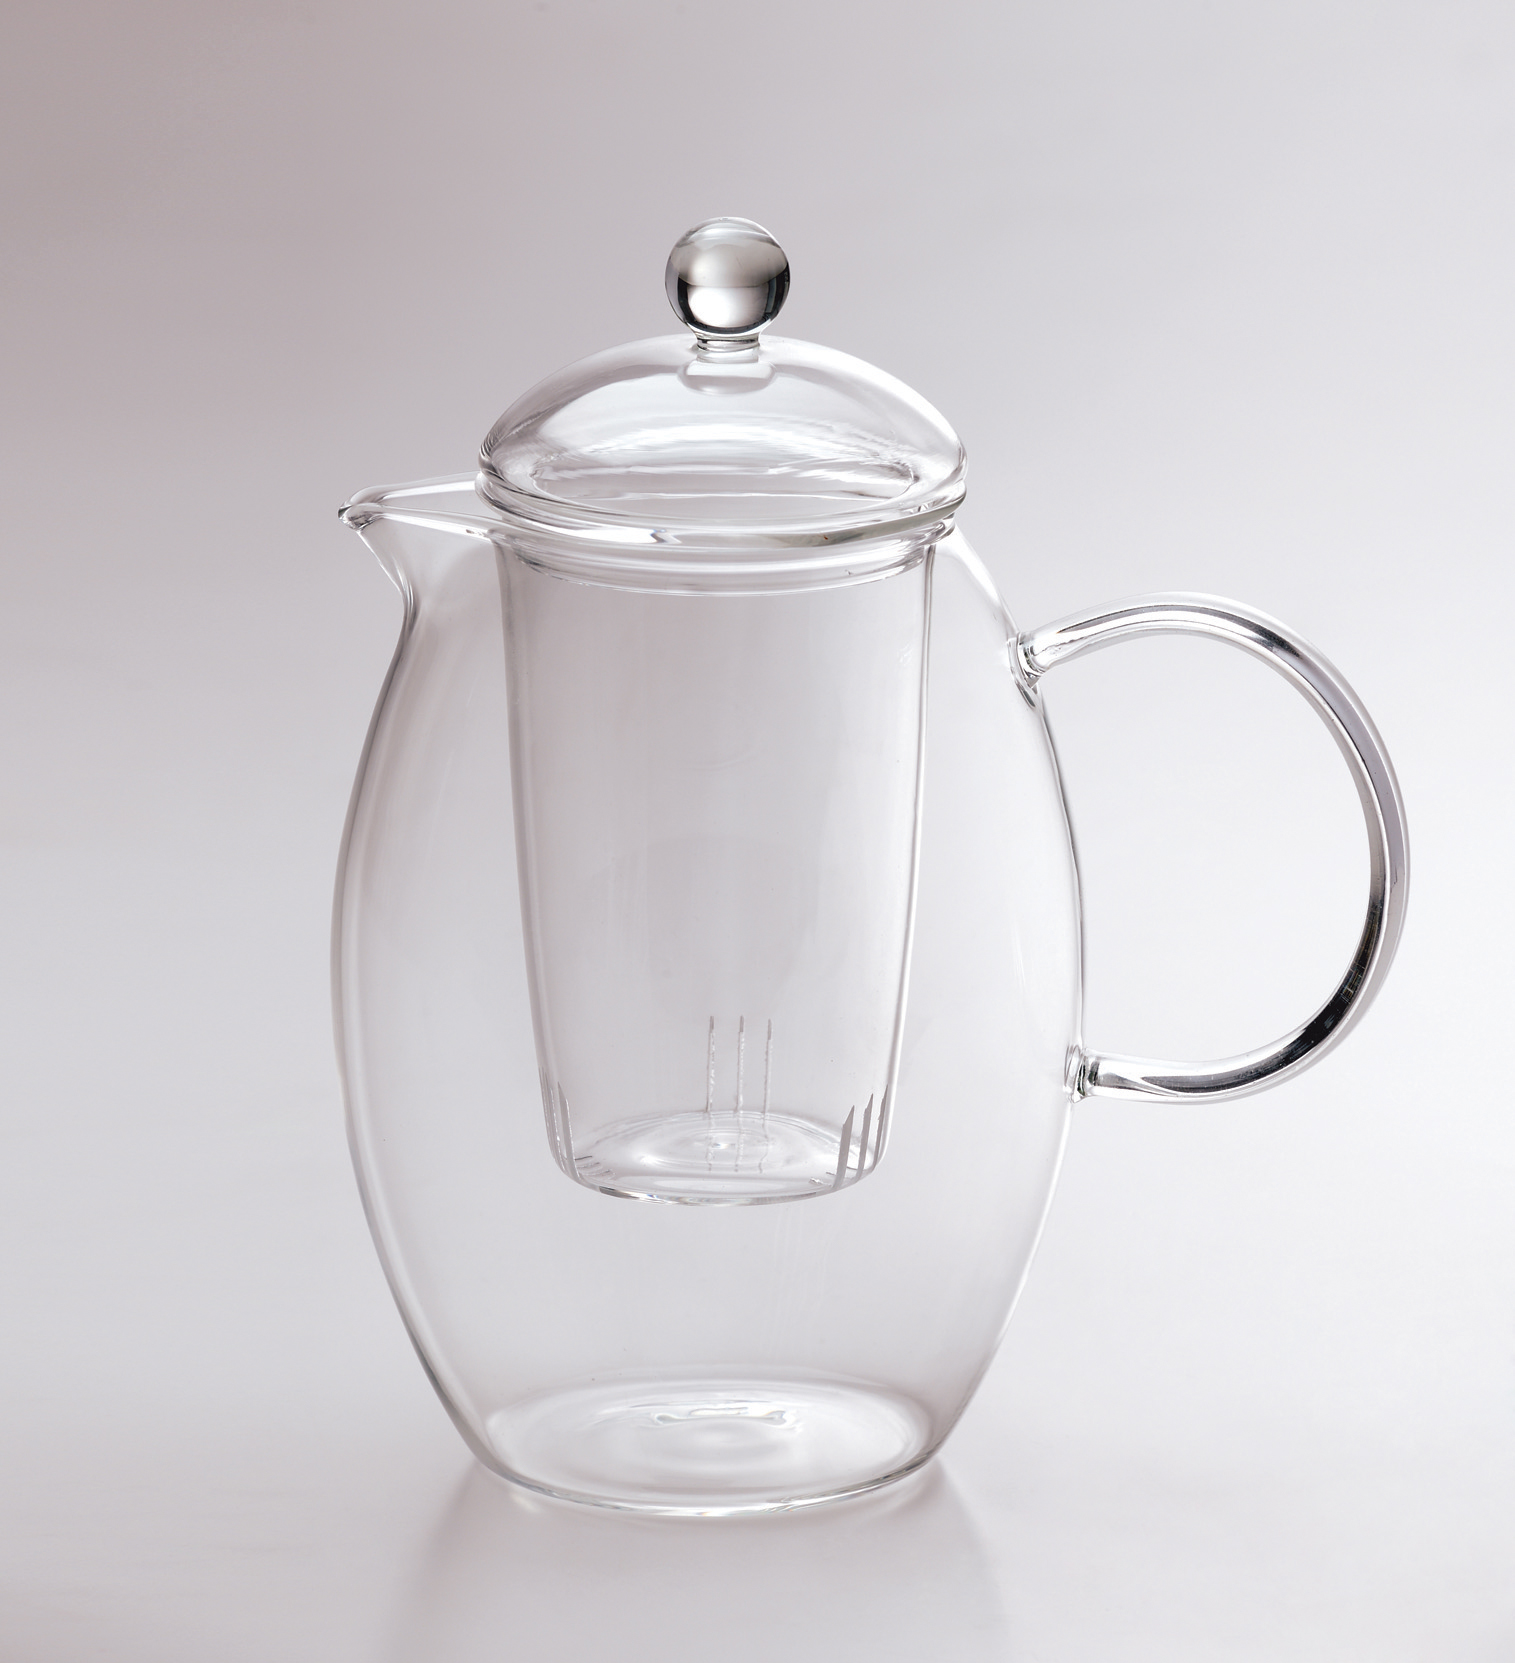 Teiera Tea-Time 1400 ml Bitossi Home @ Florenzi Casa